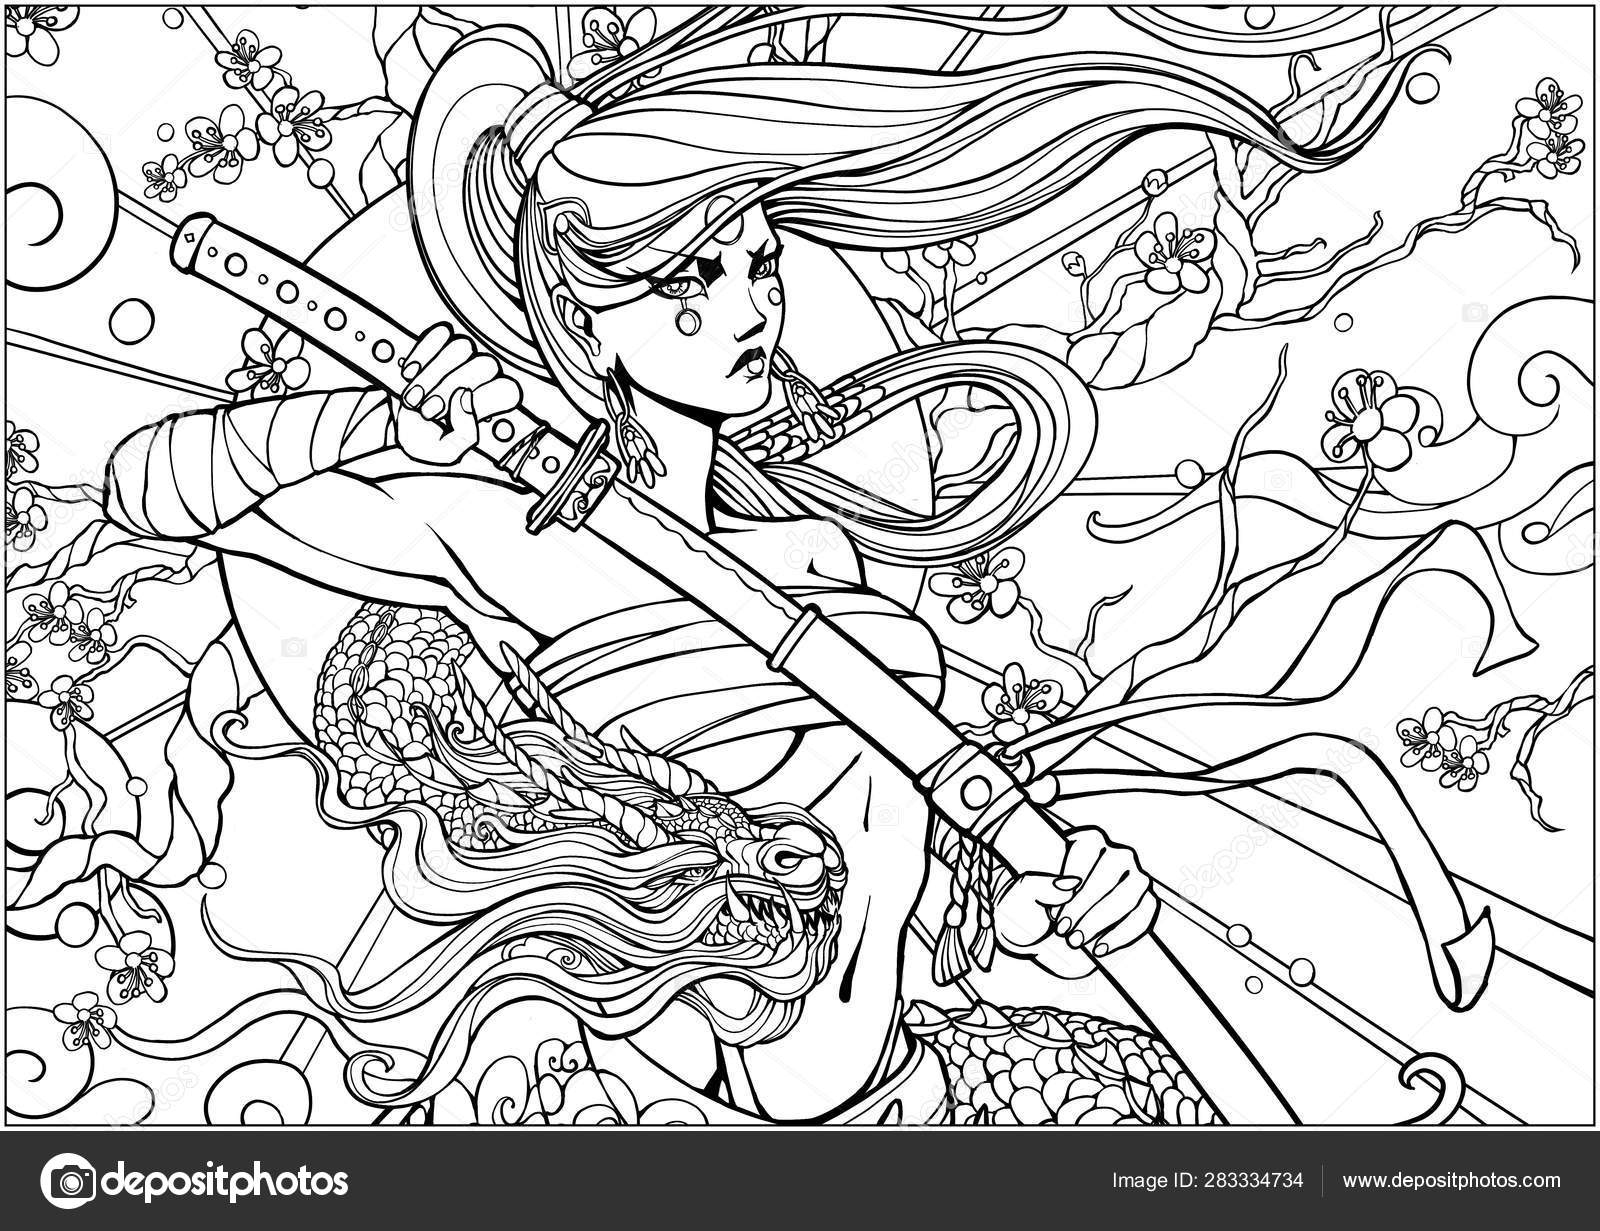 Coloring Page Adults Female Samurai Katana Dragon Twining Her